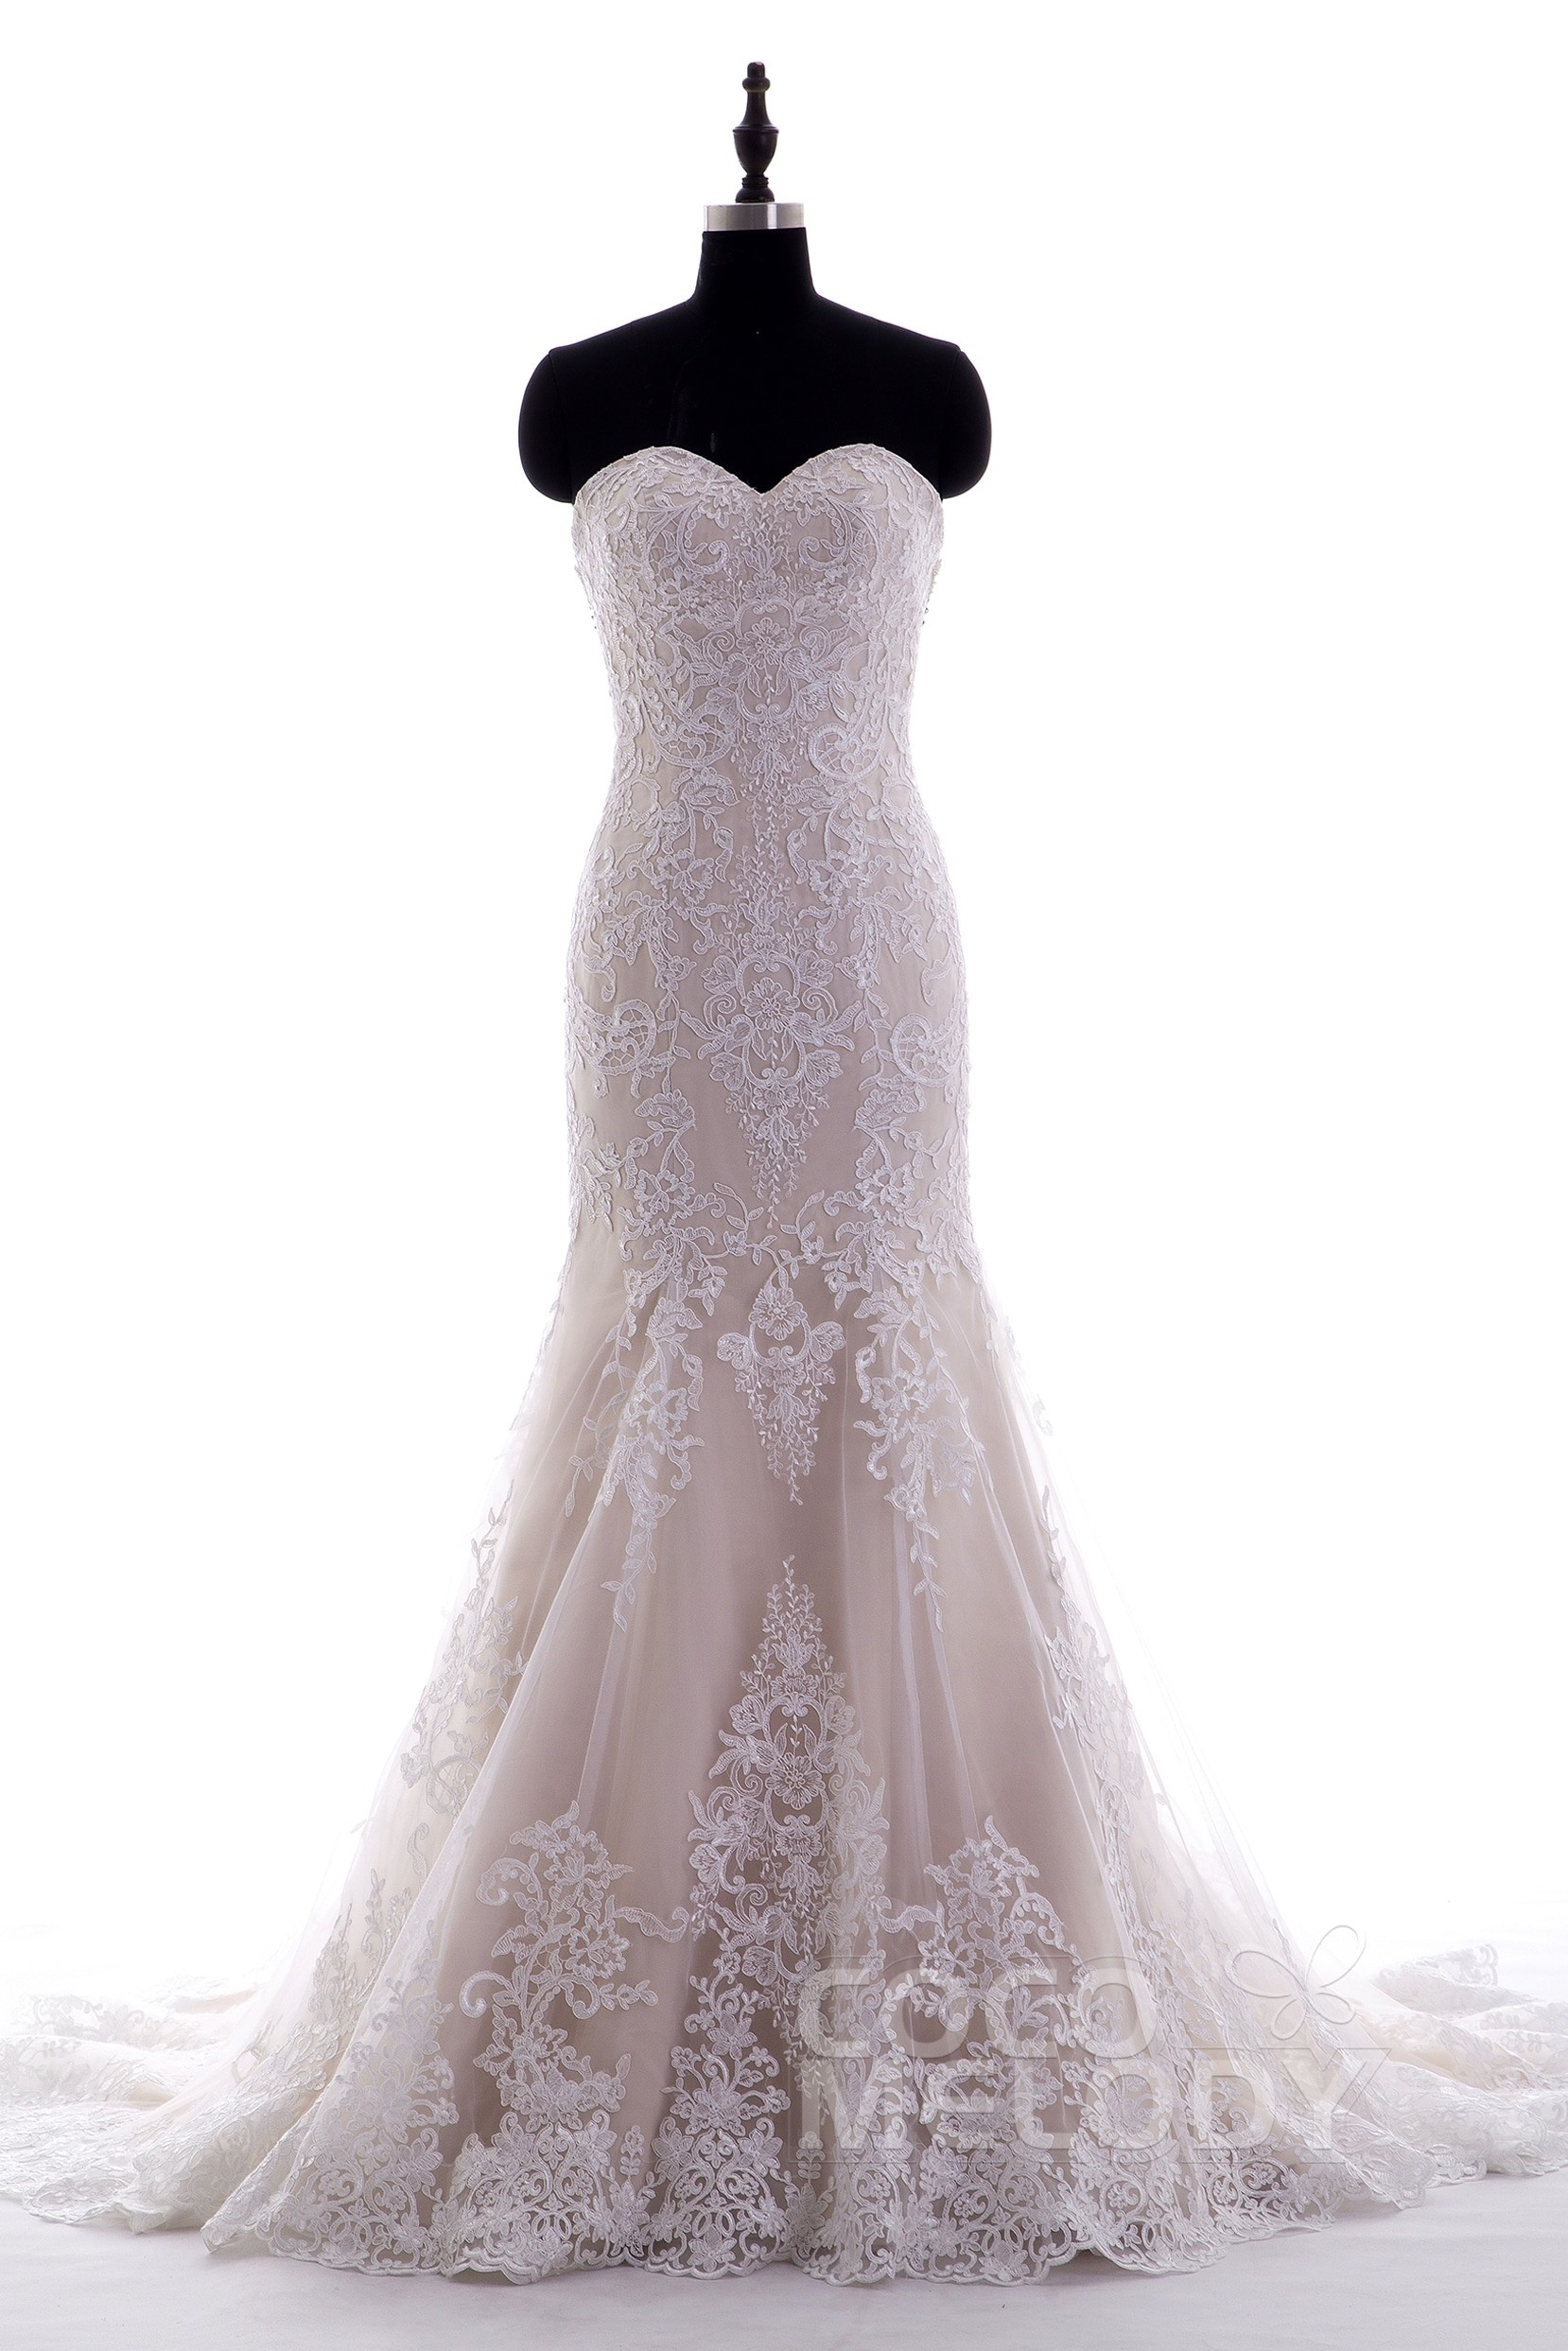 19e6089b999b Trumpet-Mermaid Court Train Lace Wedding Dress LD3906 | Cocomelody